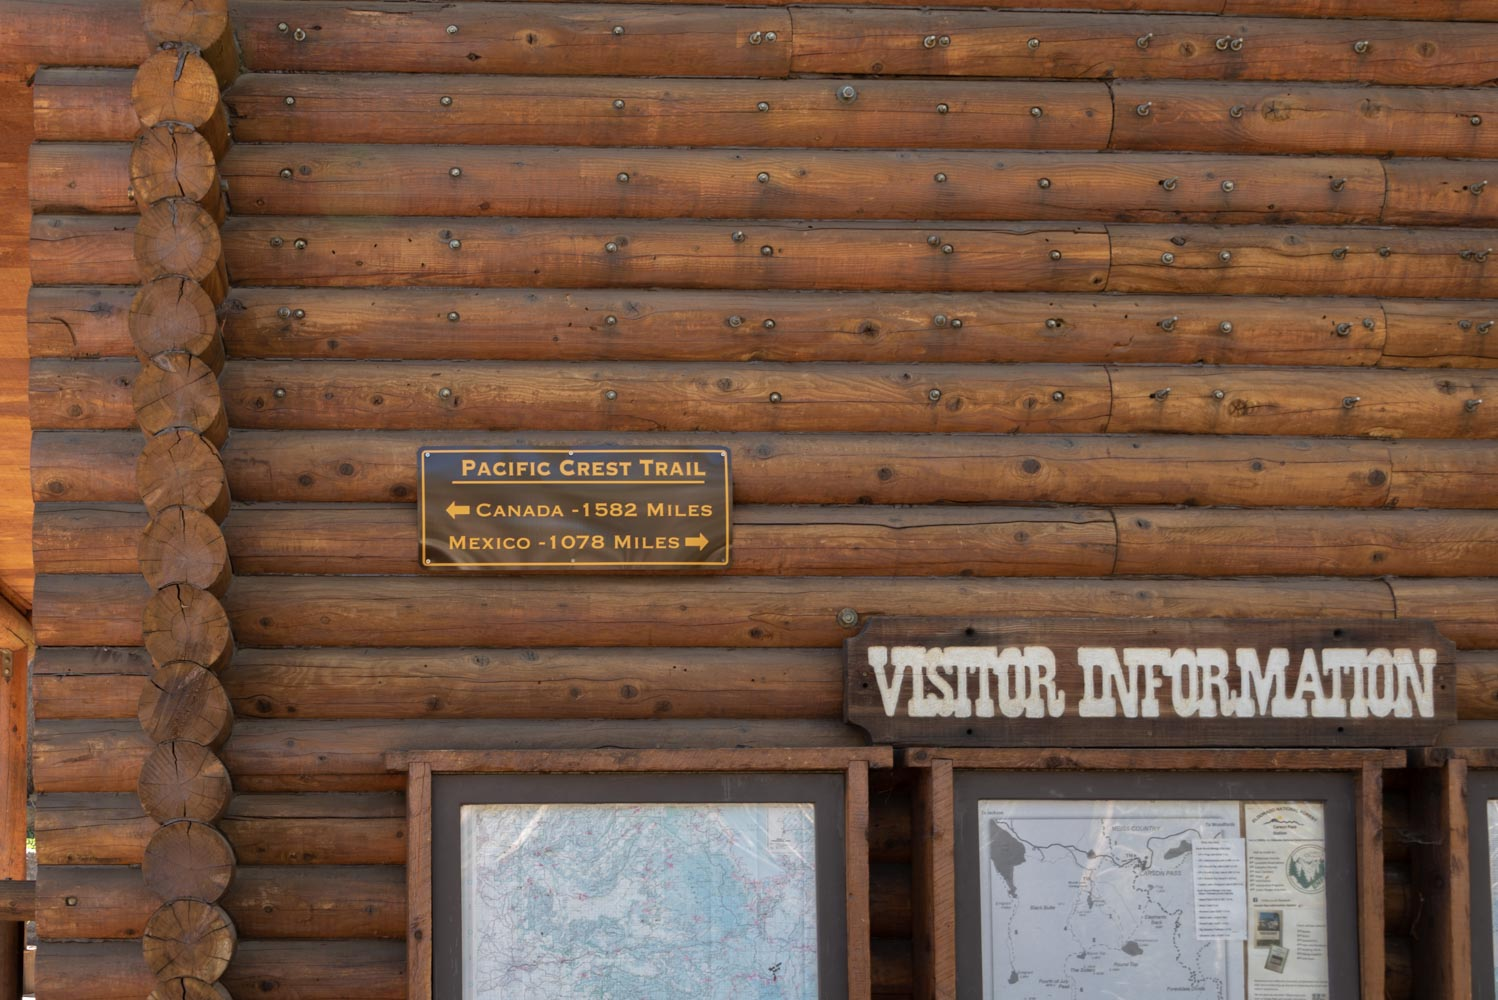 Pacific Crest Trail information plaque, posted on wooden wall of Visitor Center at Carson Pass, California.